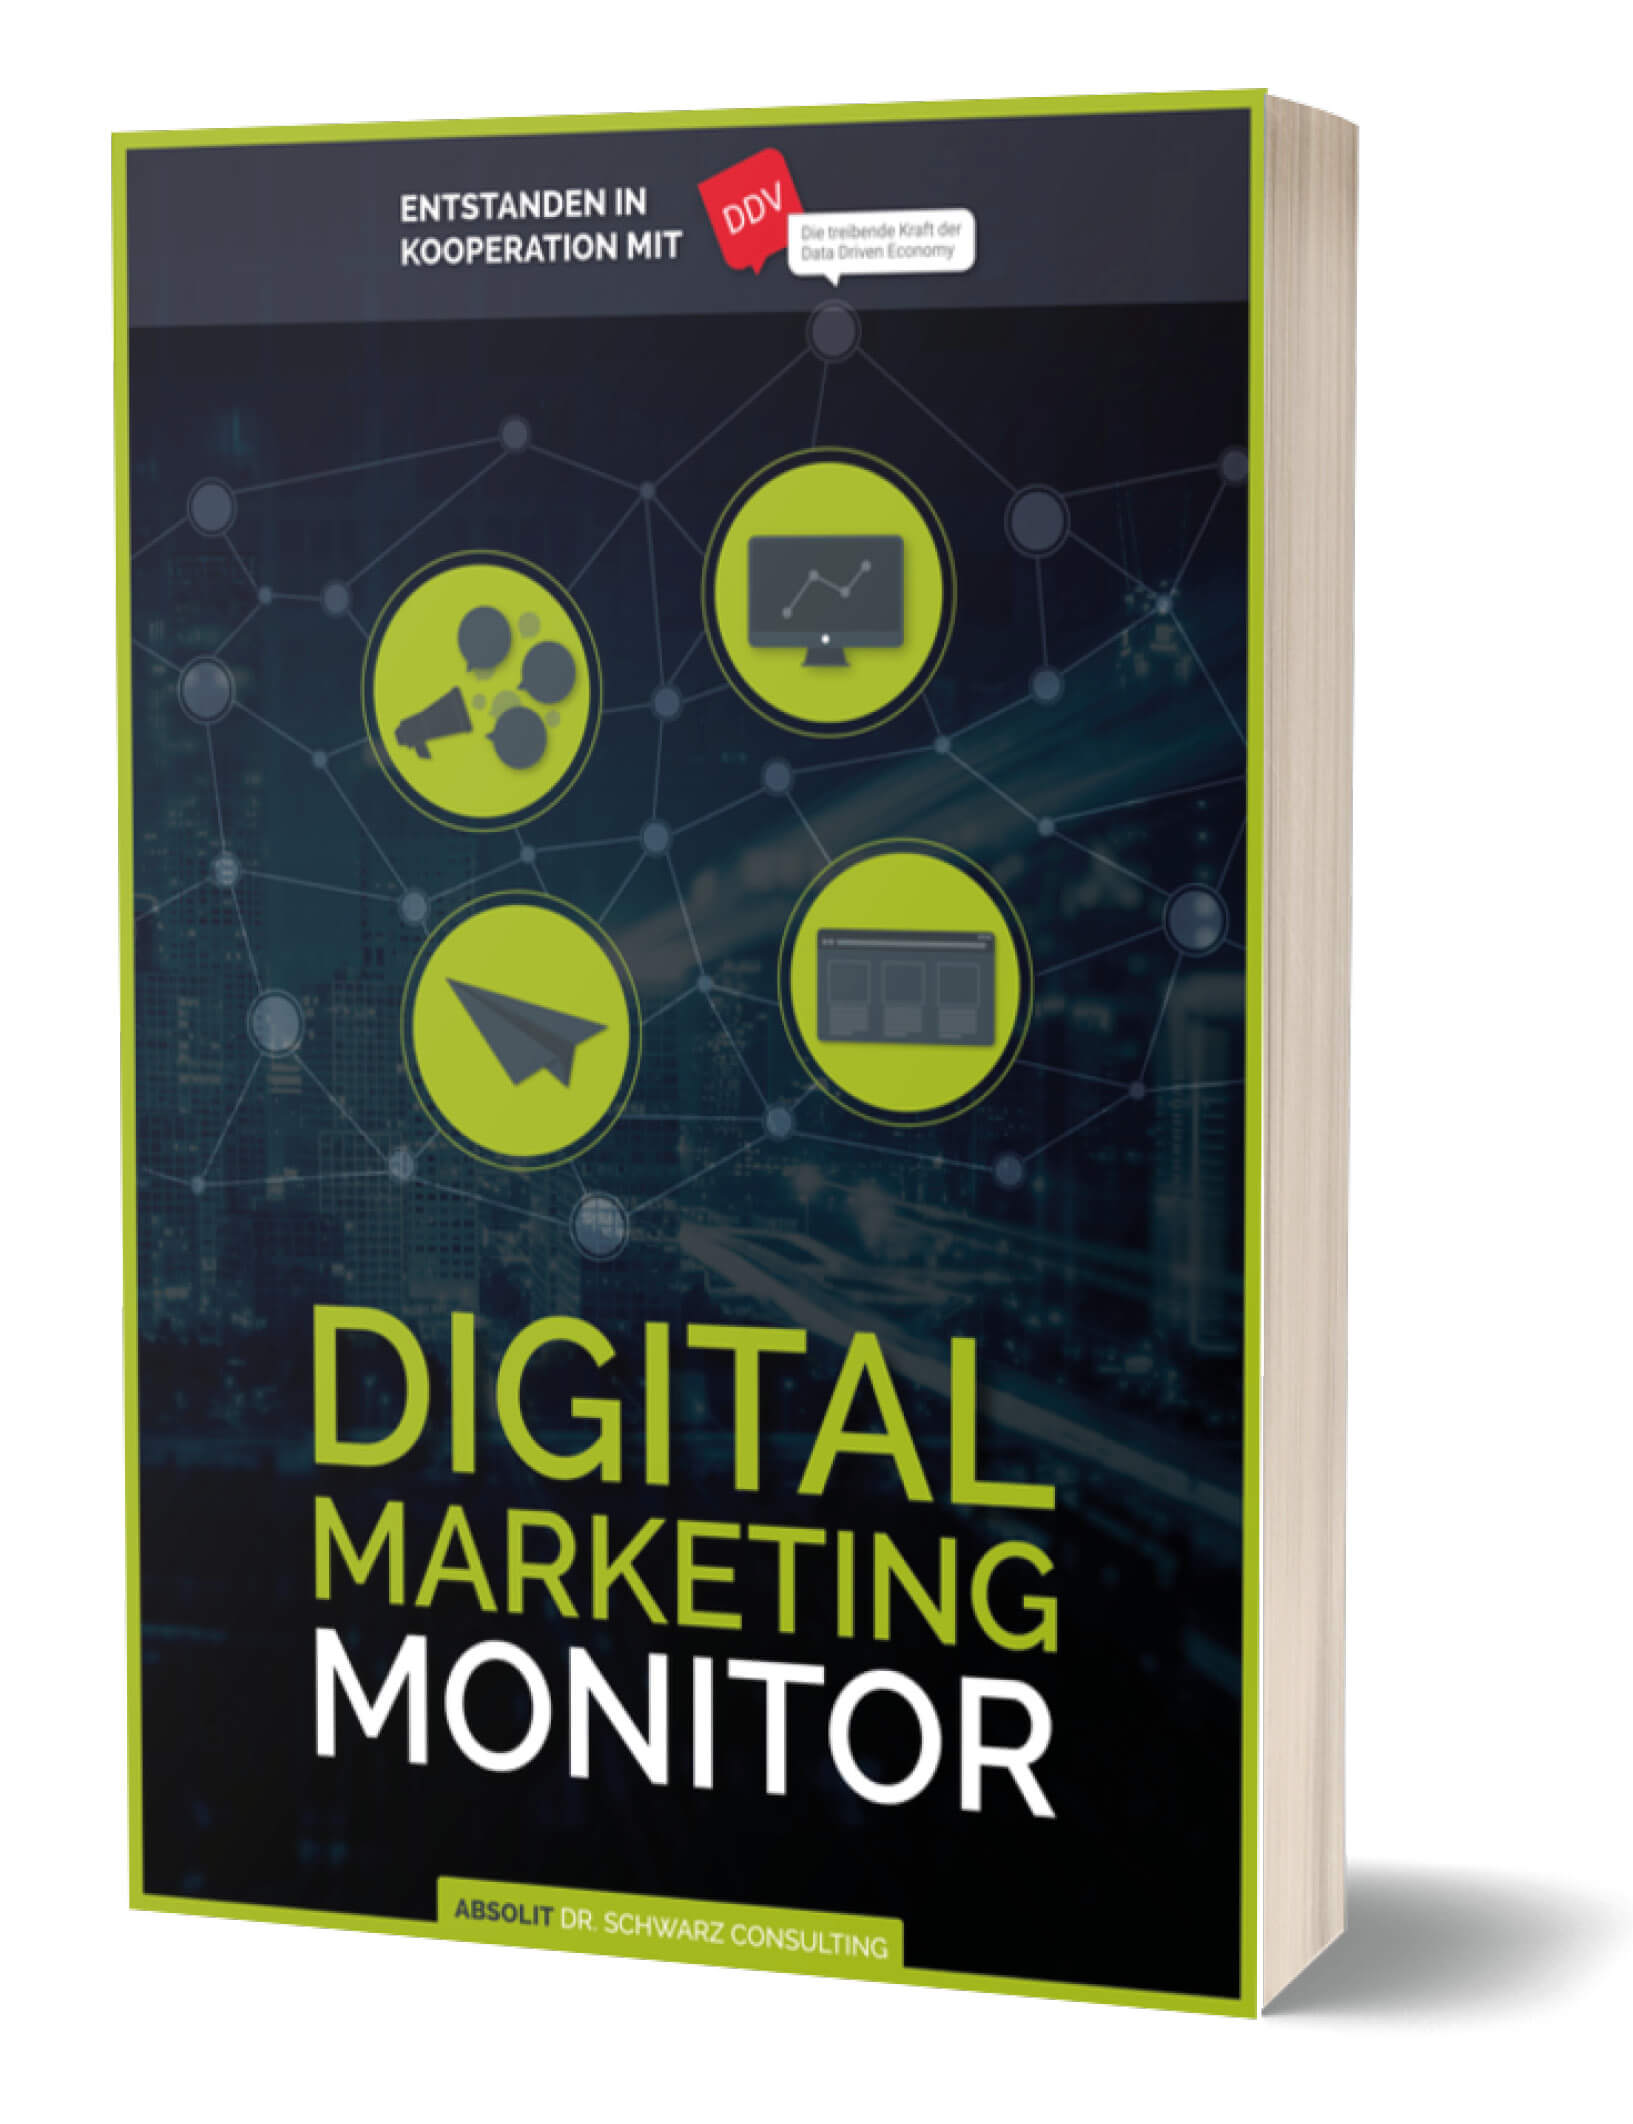 digital marketing monitor cover mockup - Digital Marketing Monitor 2019